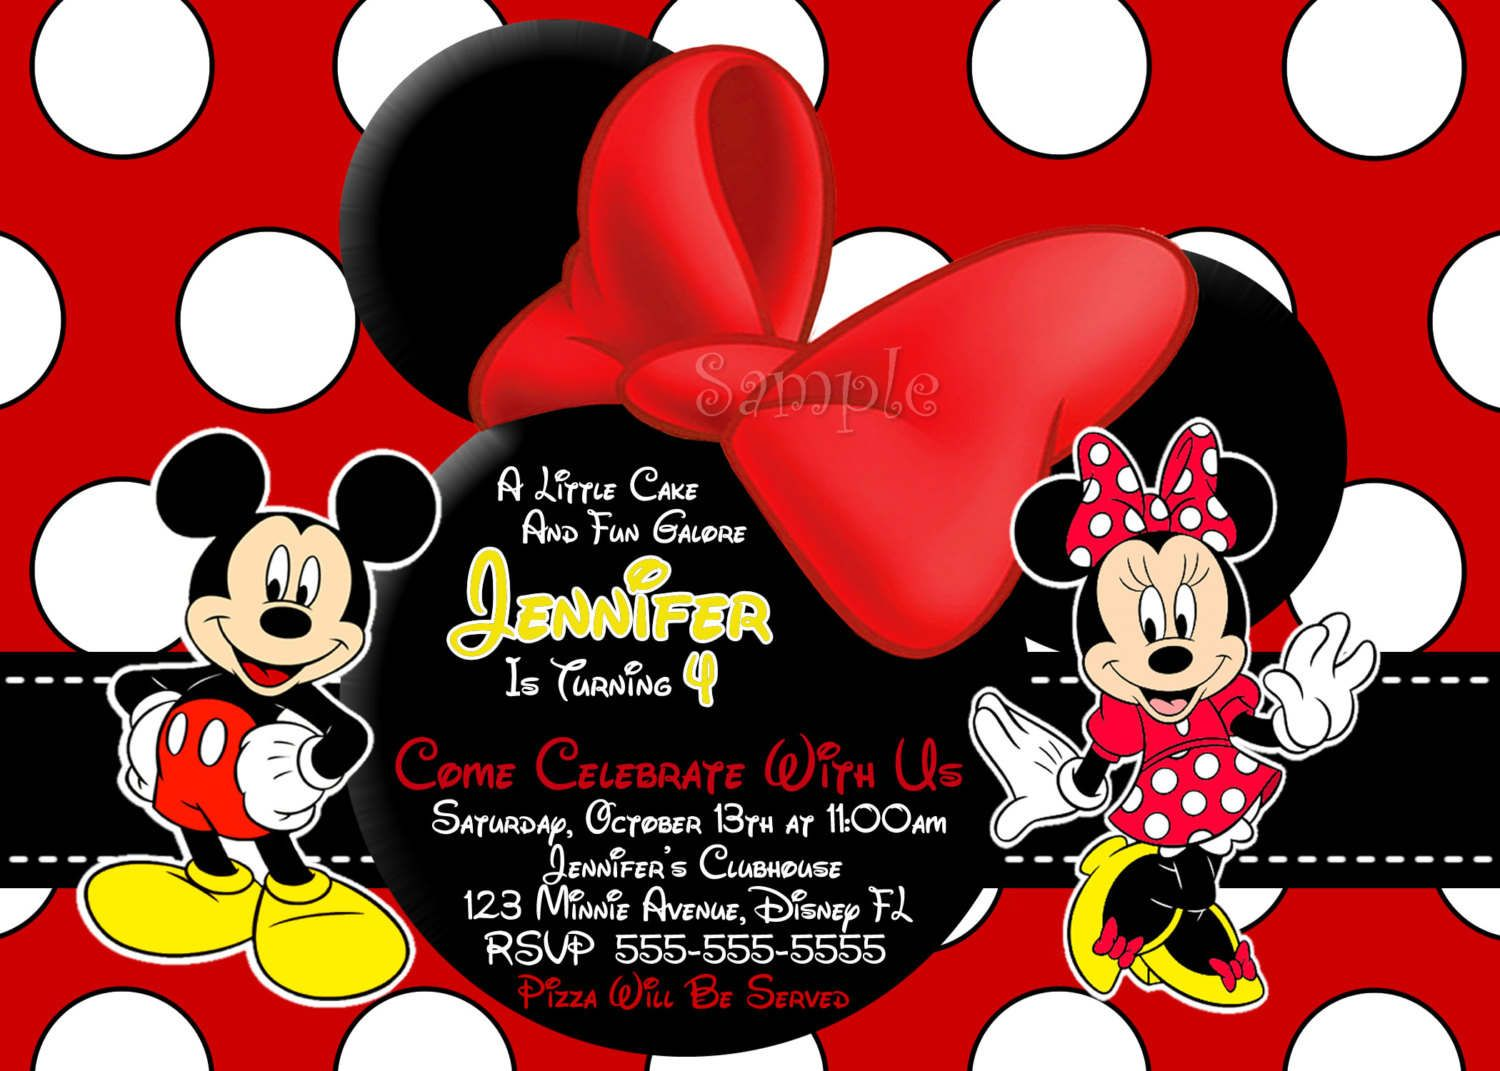 best images about festa mickey e minnie mickey 17 best images about festa mickey e minnie mickey mouse parties birthday party ideas and mickey mouse ears